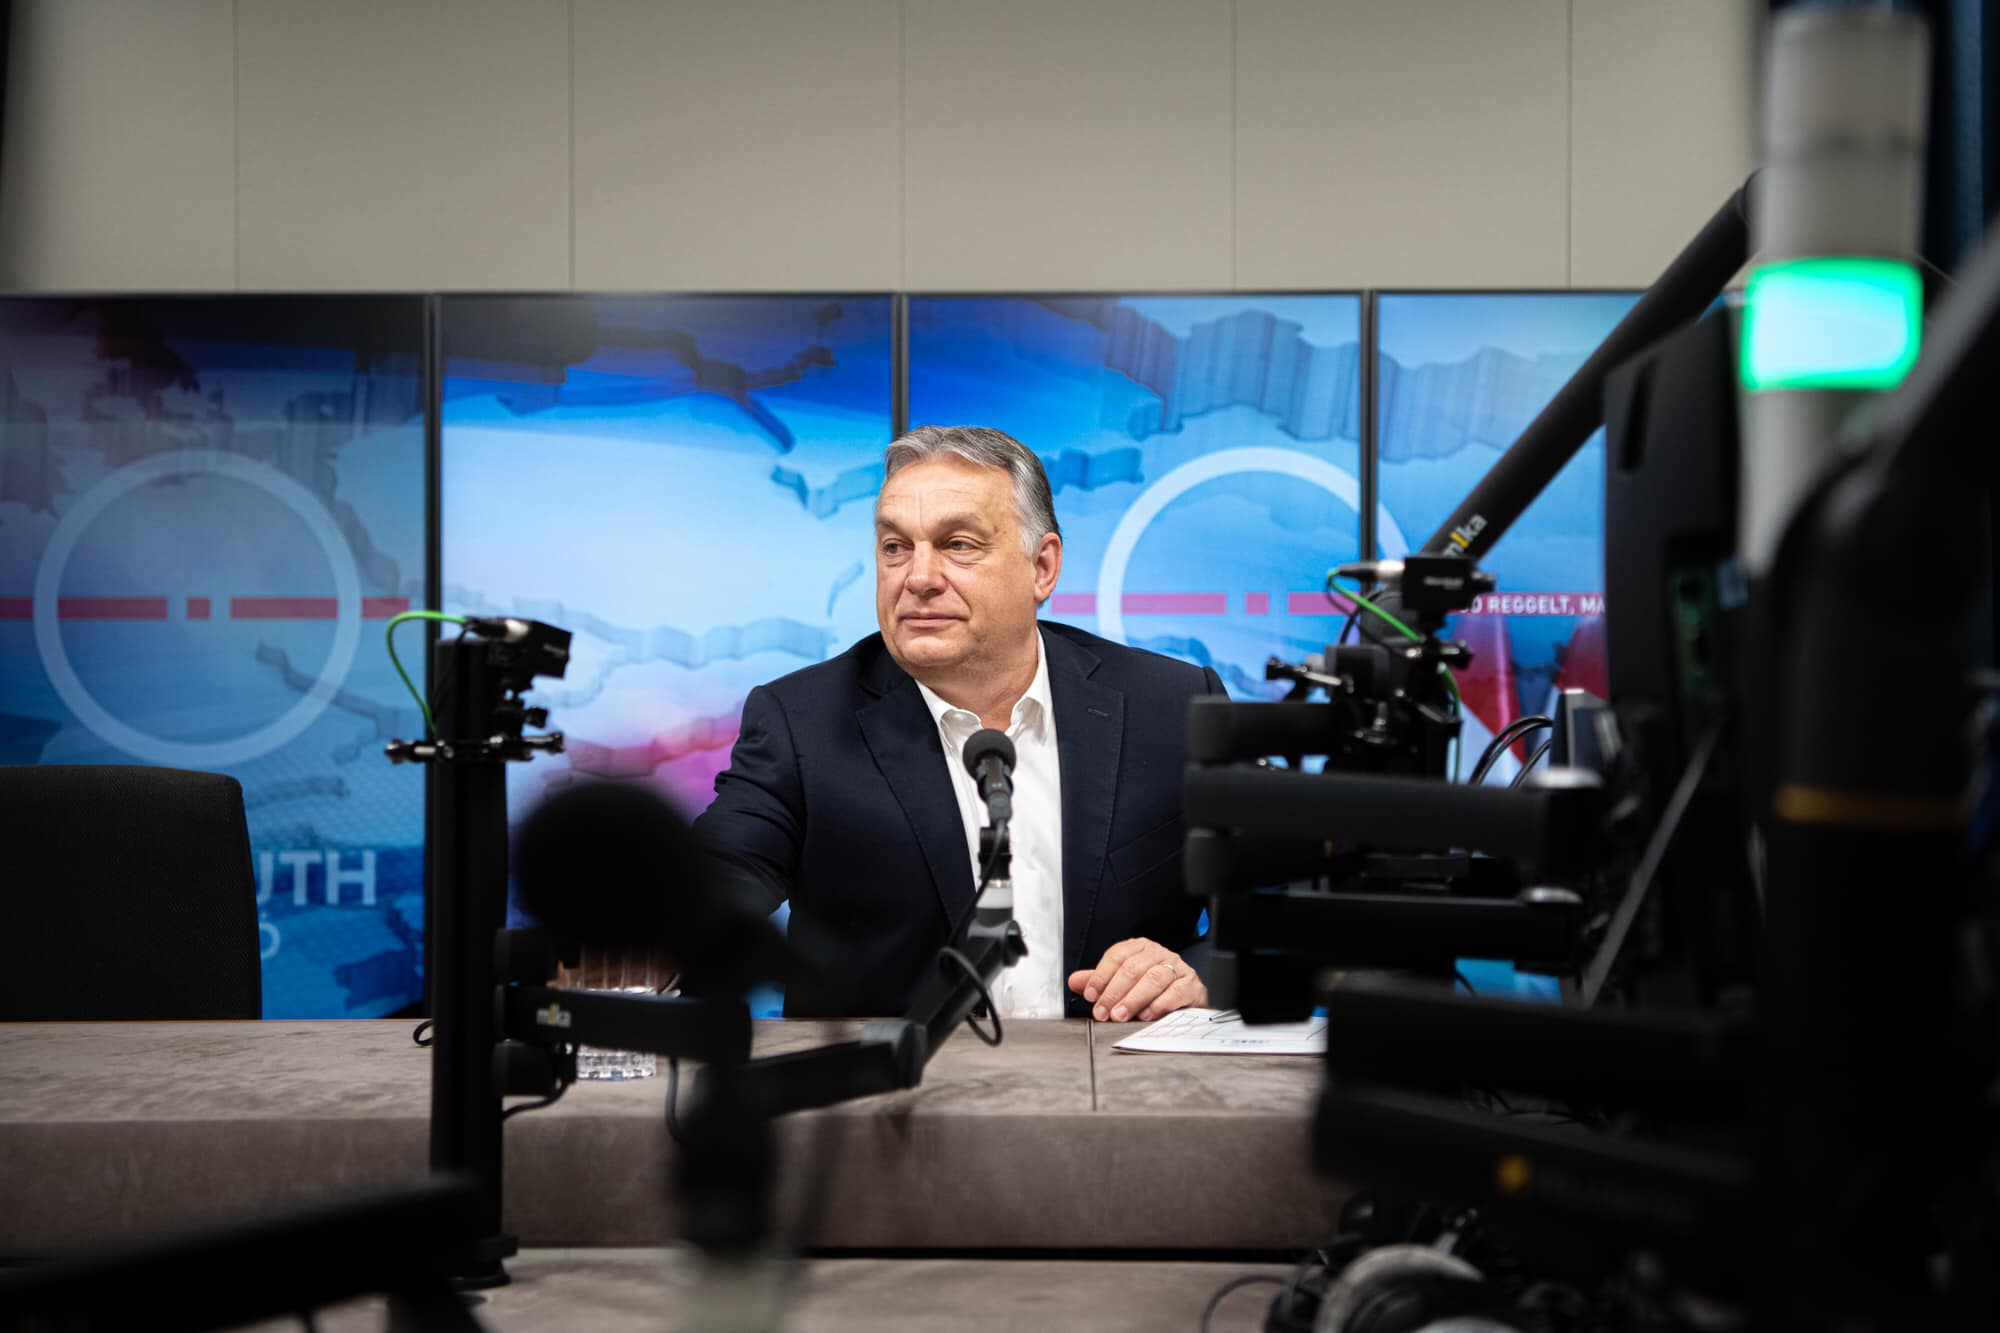 Coronavirus - Orbán: Hungary 'Heading for Freedom'